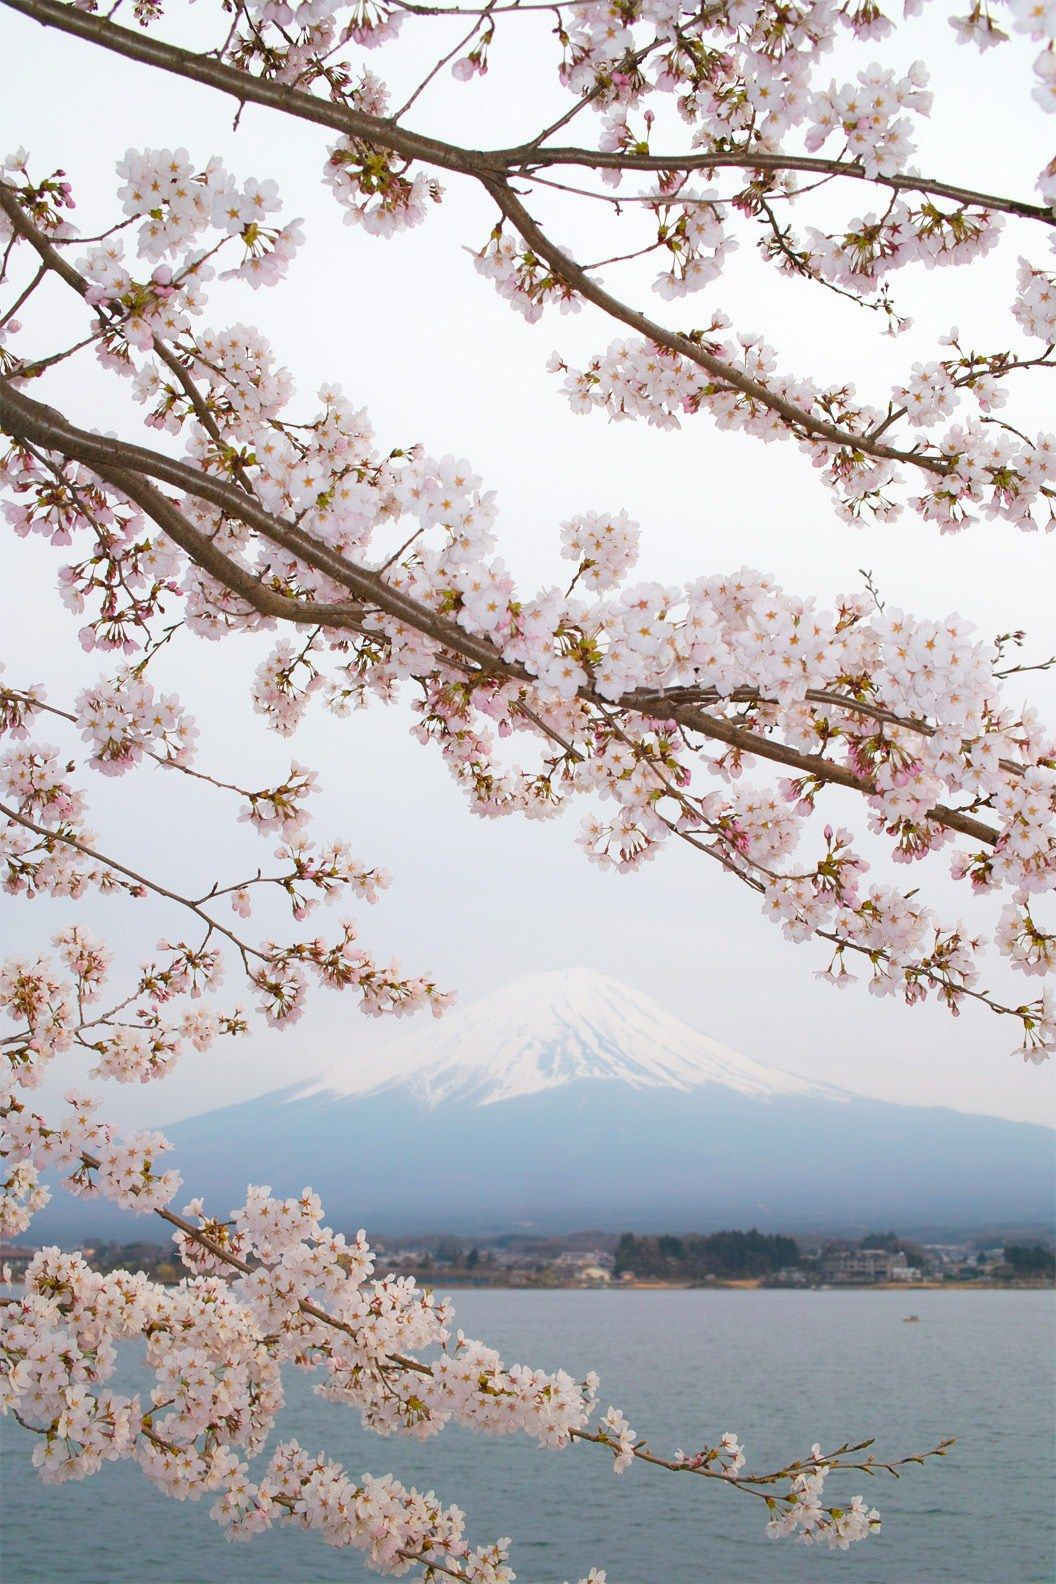 Spring In Japan 2019 When And Where To See The Cherry Blossoms Spring Scenery Cherry Blossom Japan Cherry Blossom